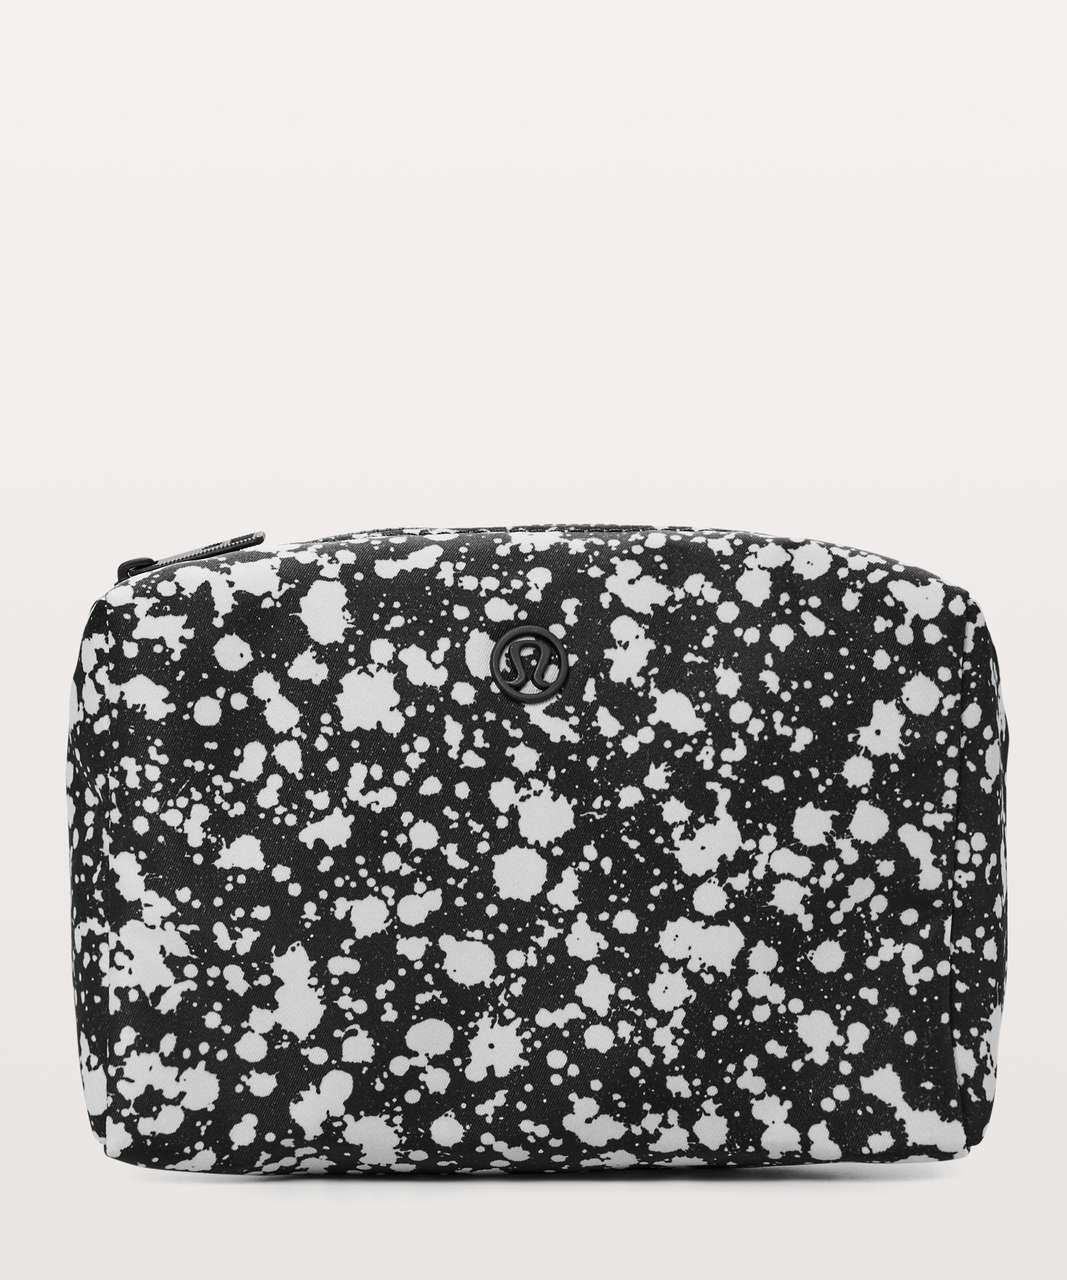 Lululemon All Your Small Things Pouch Mini - Bleached Starlight Black